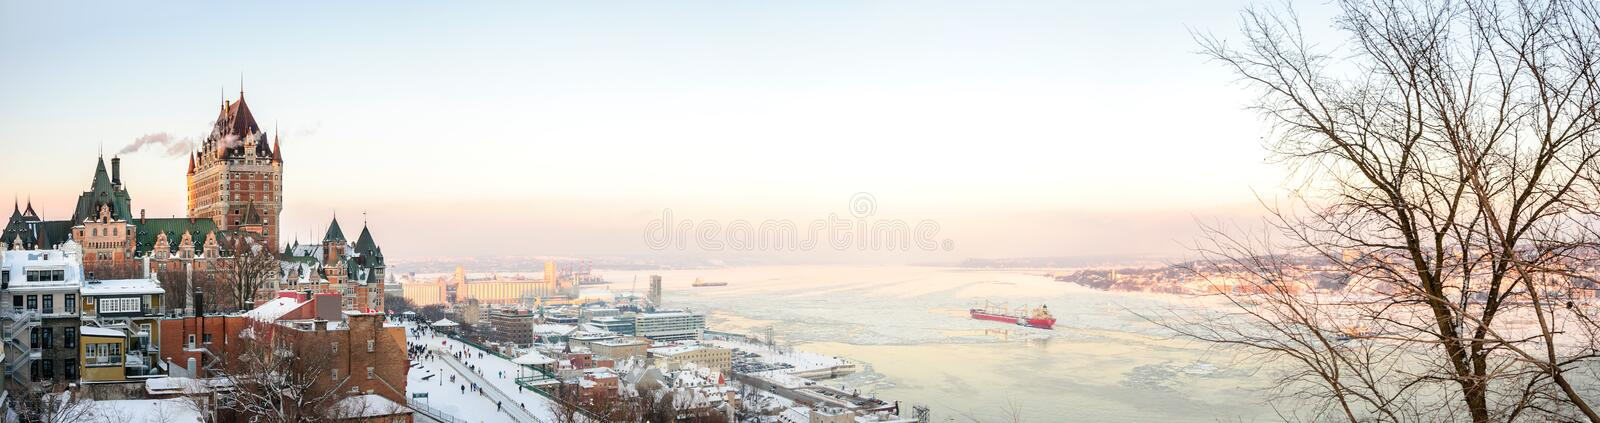 Quebec City skyline panorama with Chateau Frontenac stock photography